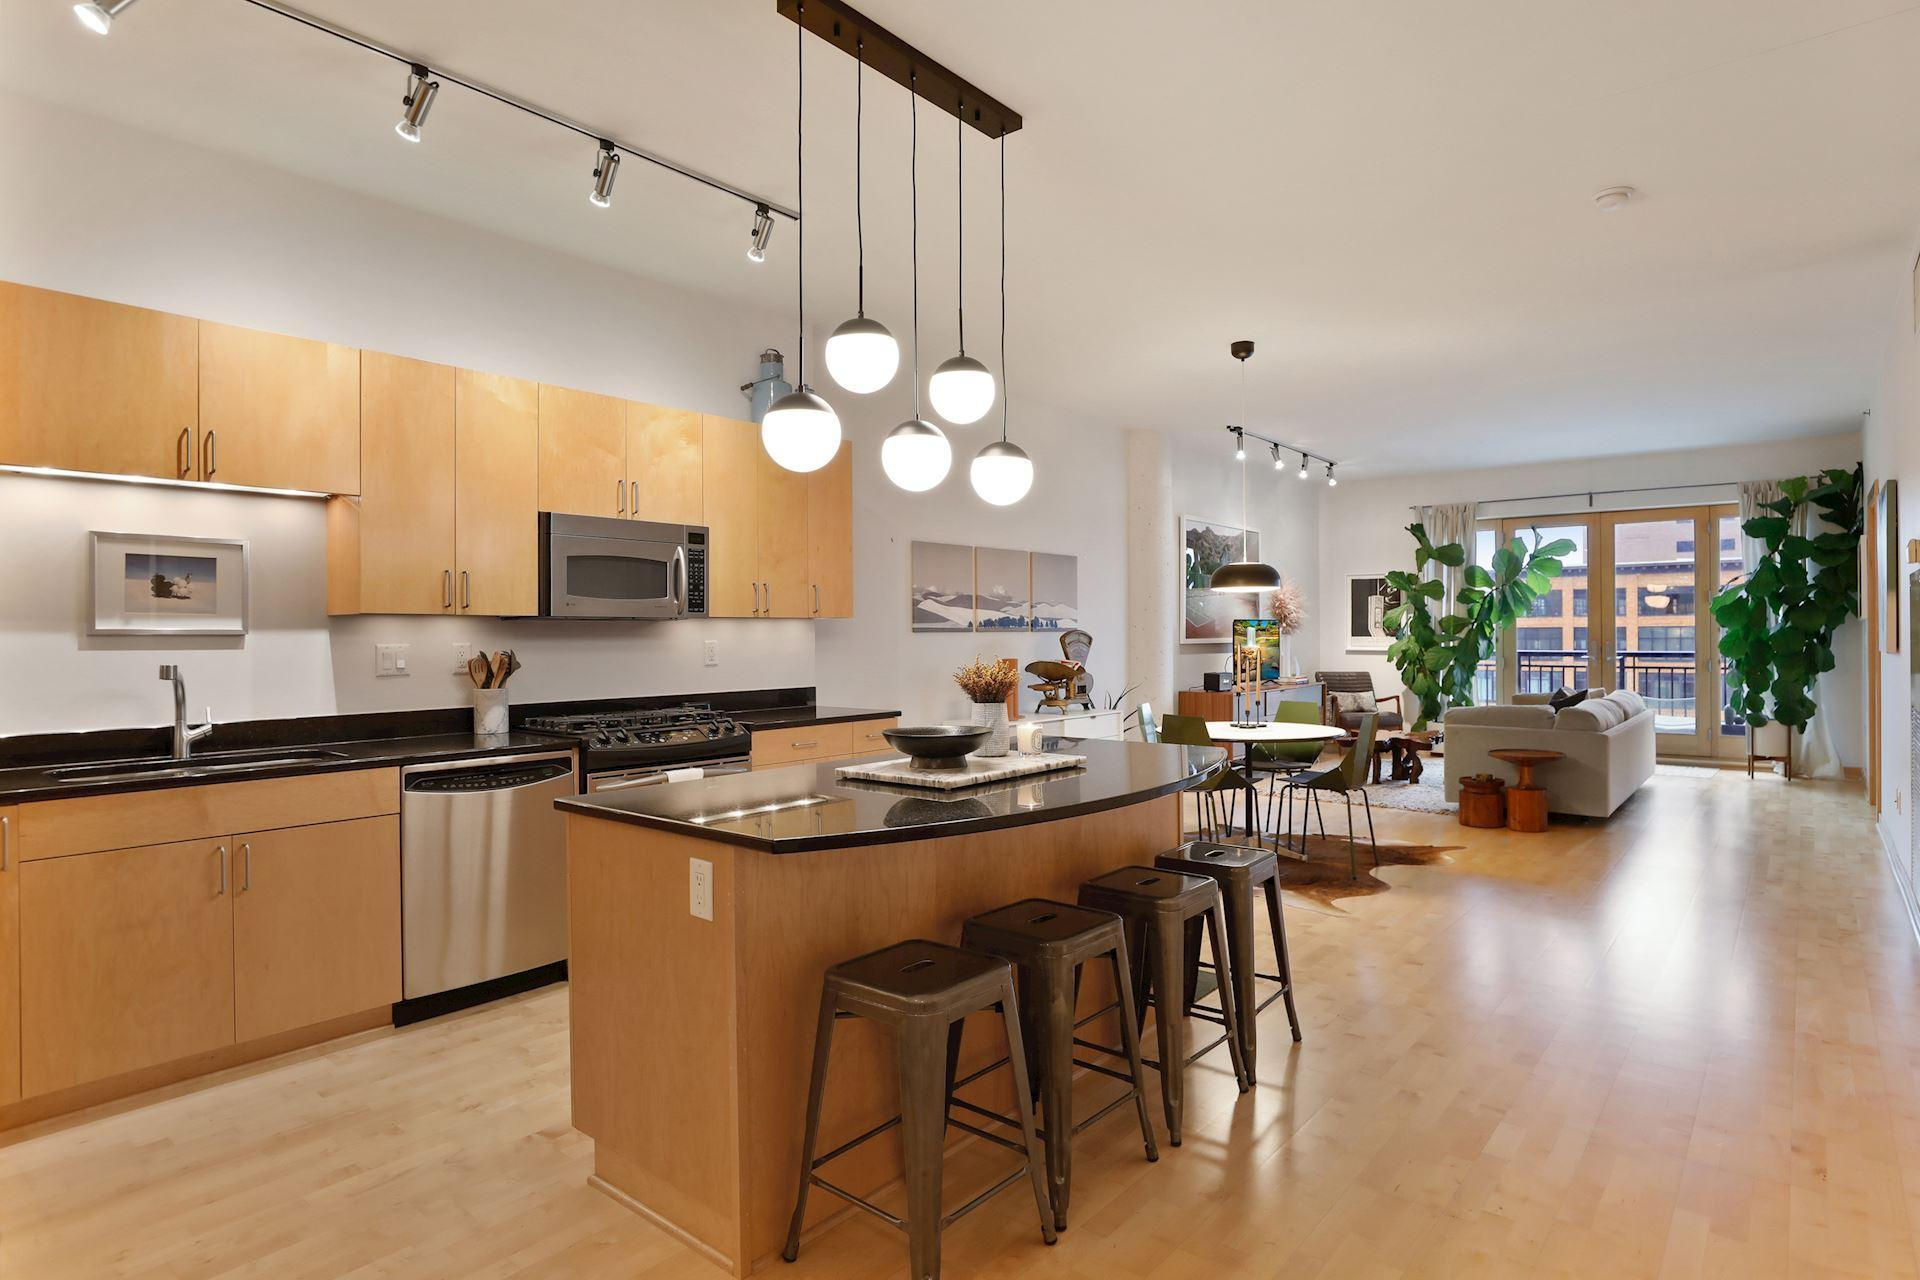 401 N 2nd Street #415 Property Photo - Minneapolis, MN real estate listing